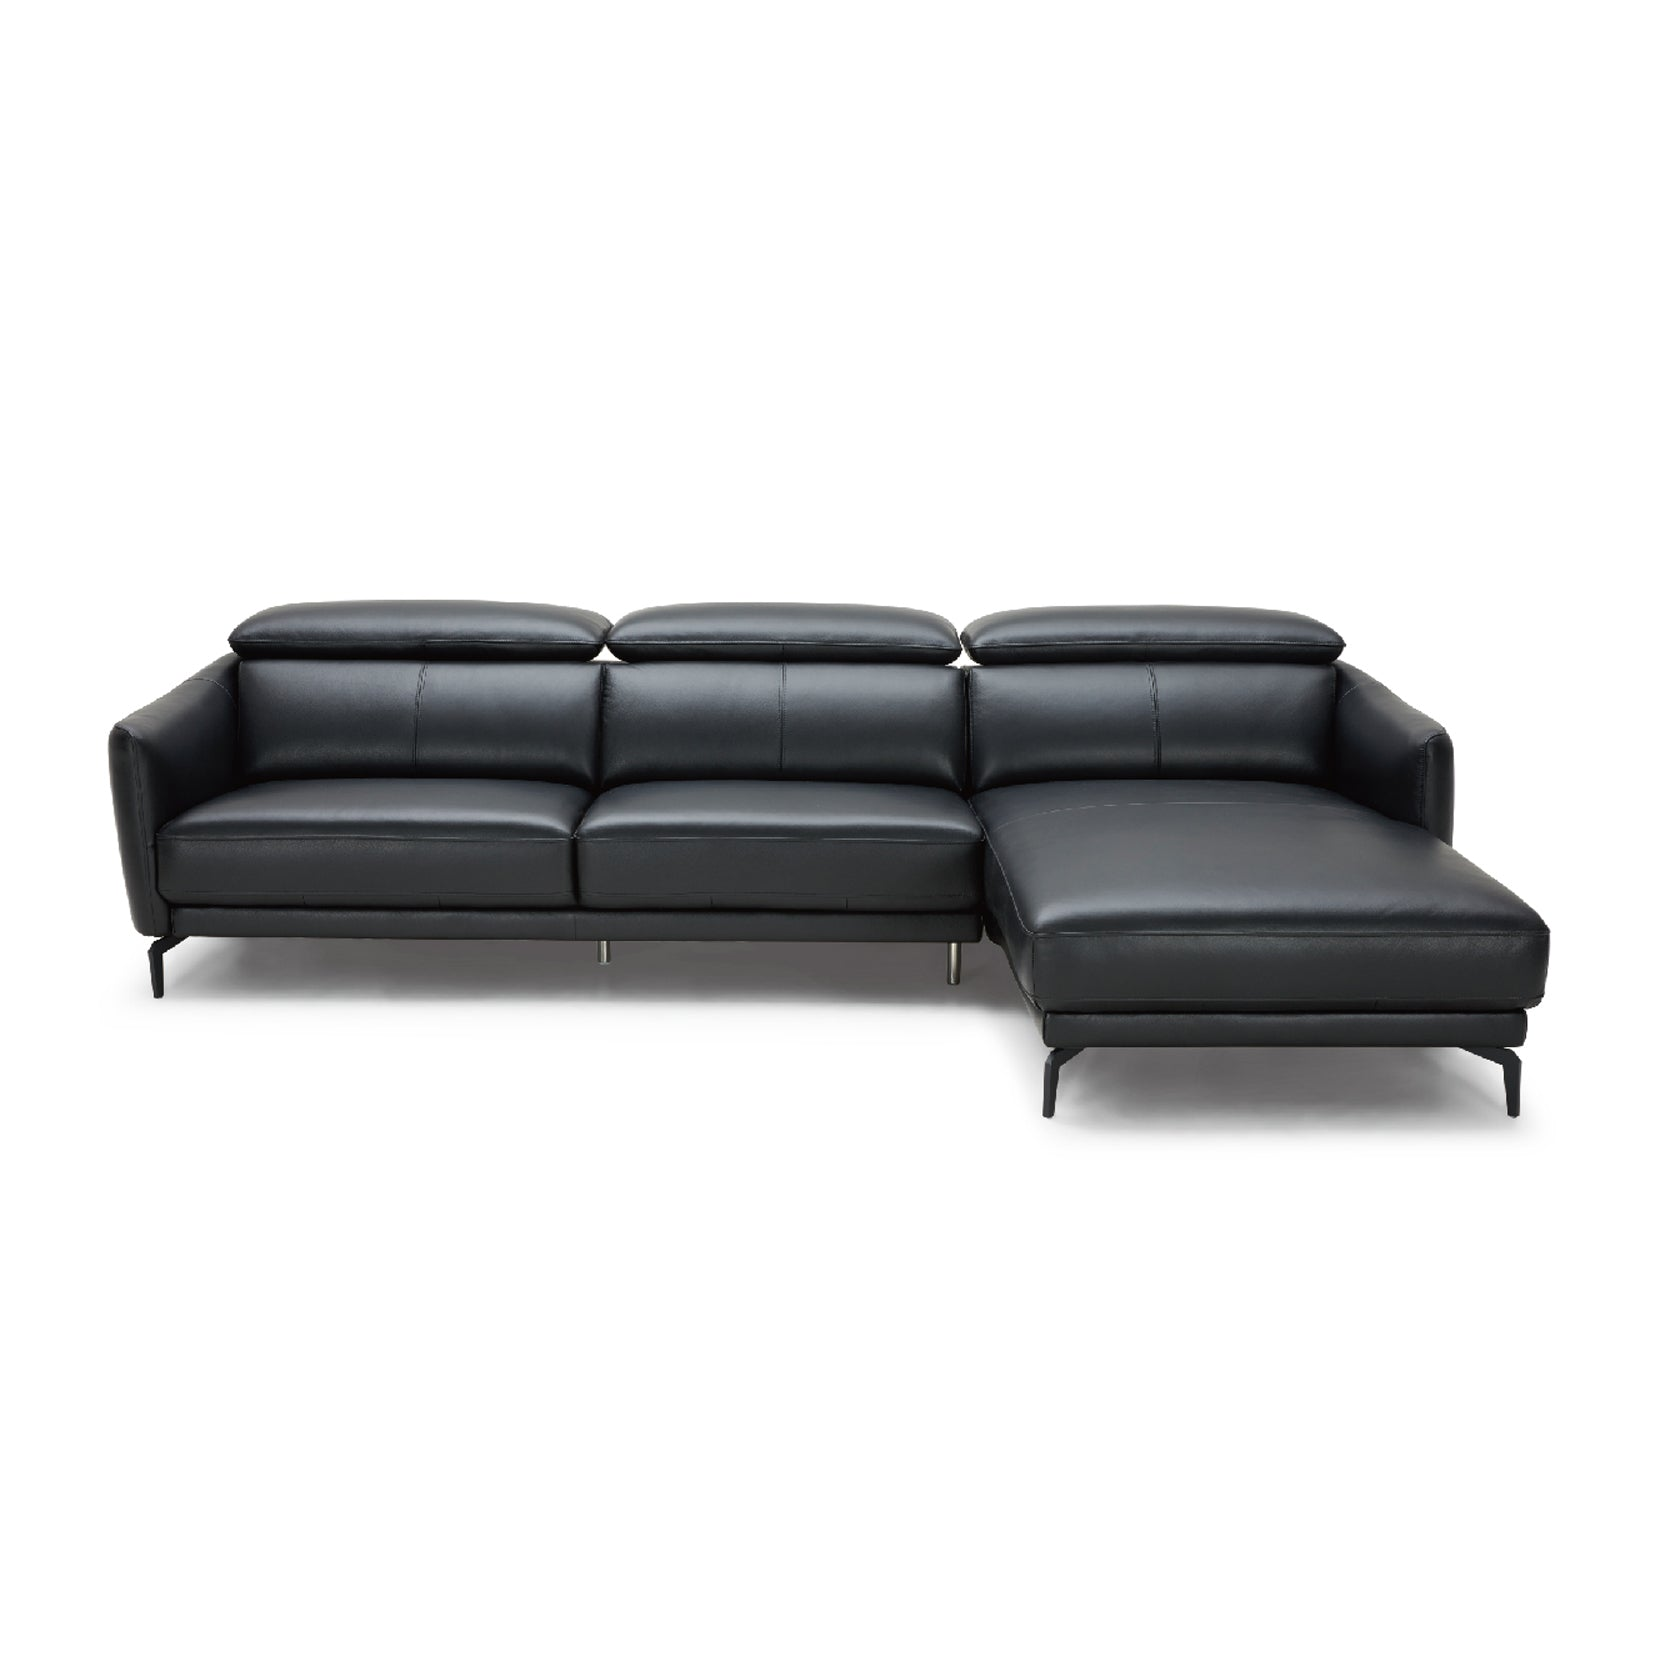 Groovy Kuka 5359 Leather Sofa 1 2 3 Seater Ottoman Chaise Dailytribune Chair Design For Home Dailytribuneorg